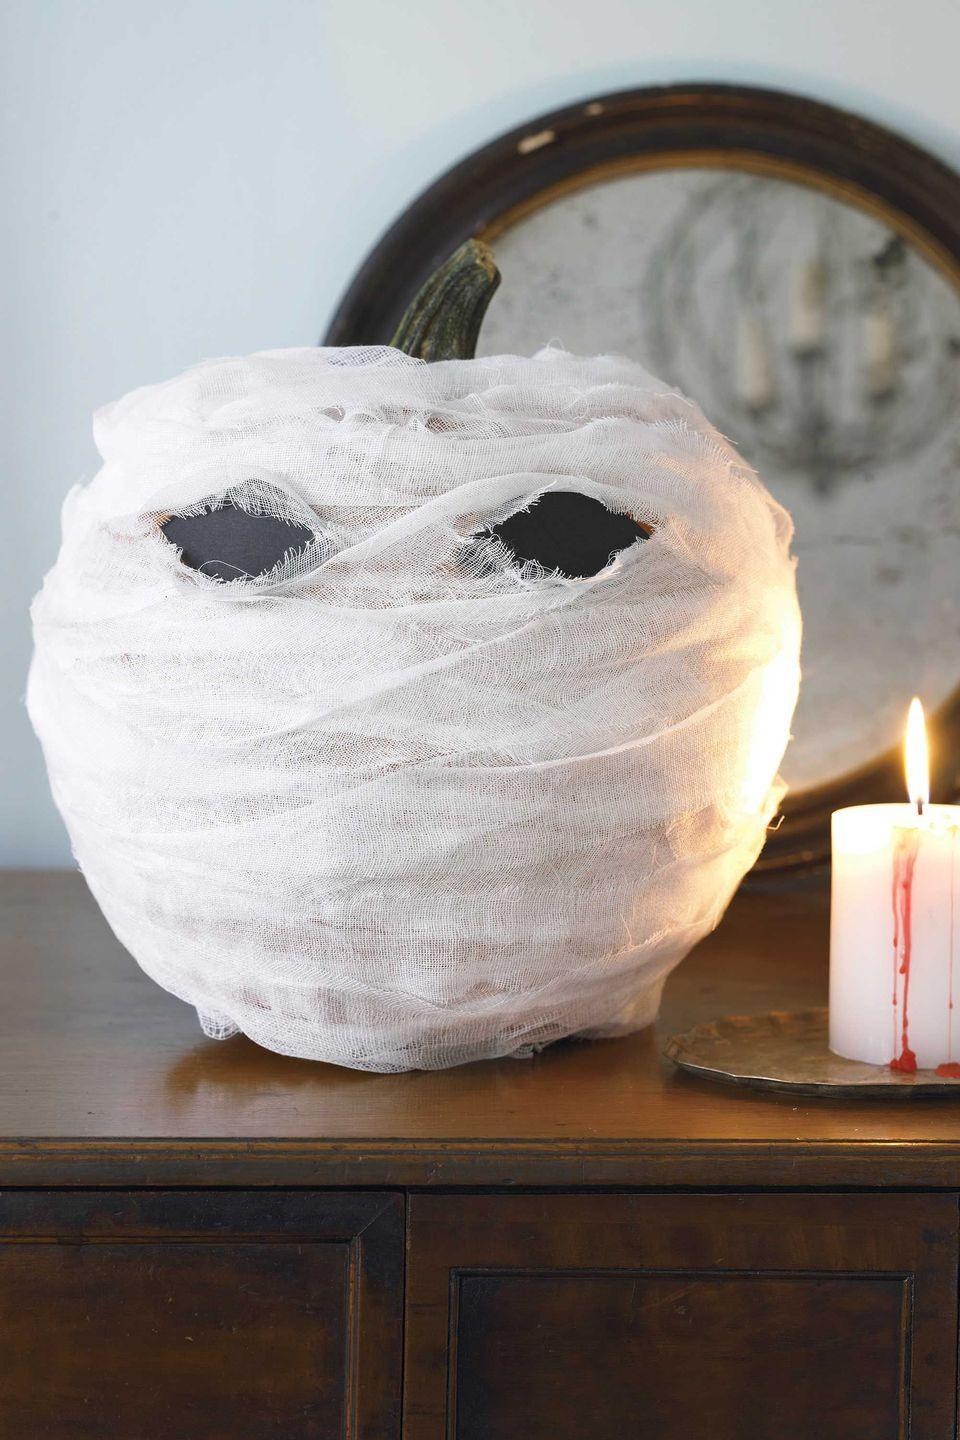 """<p>Wrap a pumpkin in cheesecloth to create an ominous-looking mummy's head. Black construction-paper eyes add to the eerie image.</p><p><strong><em><a href=""""https://www.womansday.com/home/crafts-projects/how-to/a5999/craft-project-menacing-mummy-123881/"""" rel=""""nofollow noopener"""" target=""""_blank"""" data-ylk=""""slk:Get the Menacing Mummy tutorial."""" class=""""link rapid-noclick-resp"""">Get the Menacing Mummy tutorial.</a></em></strong></p>"""